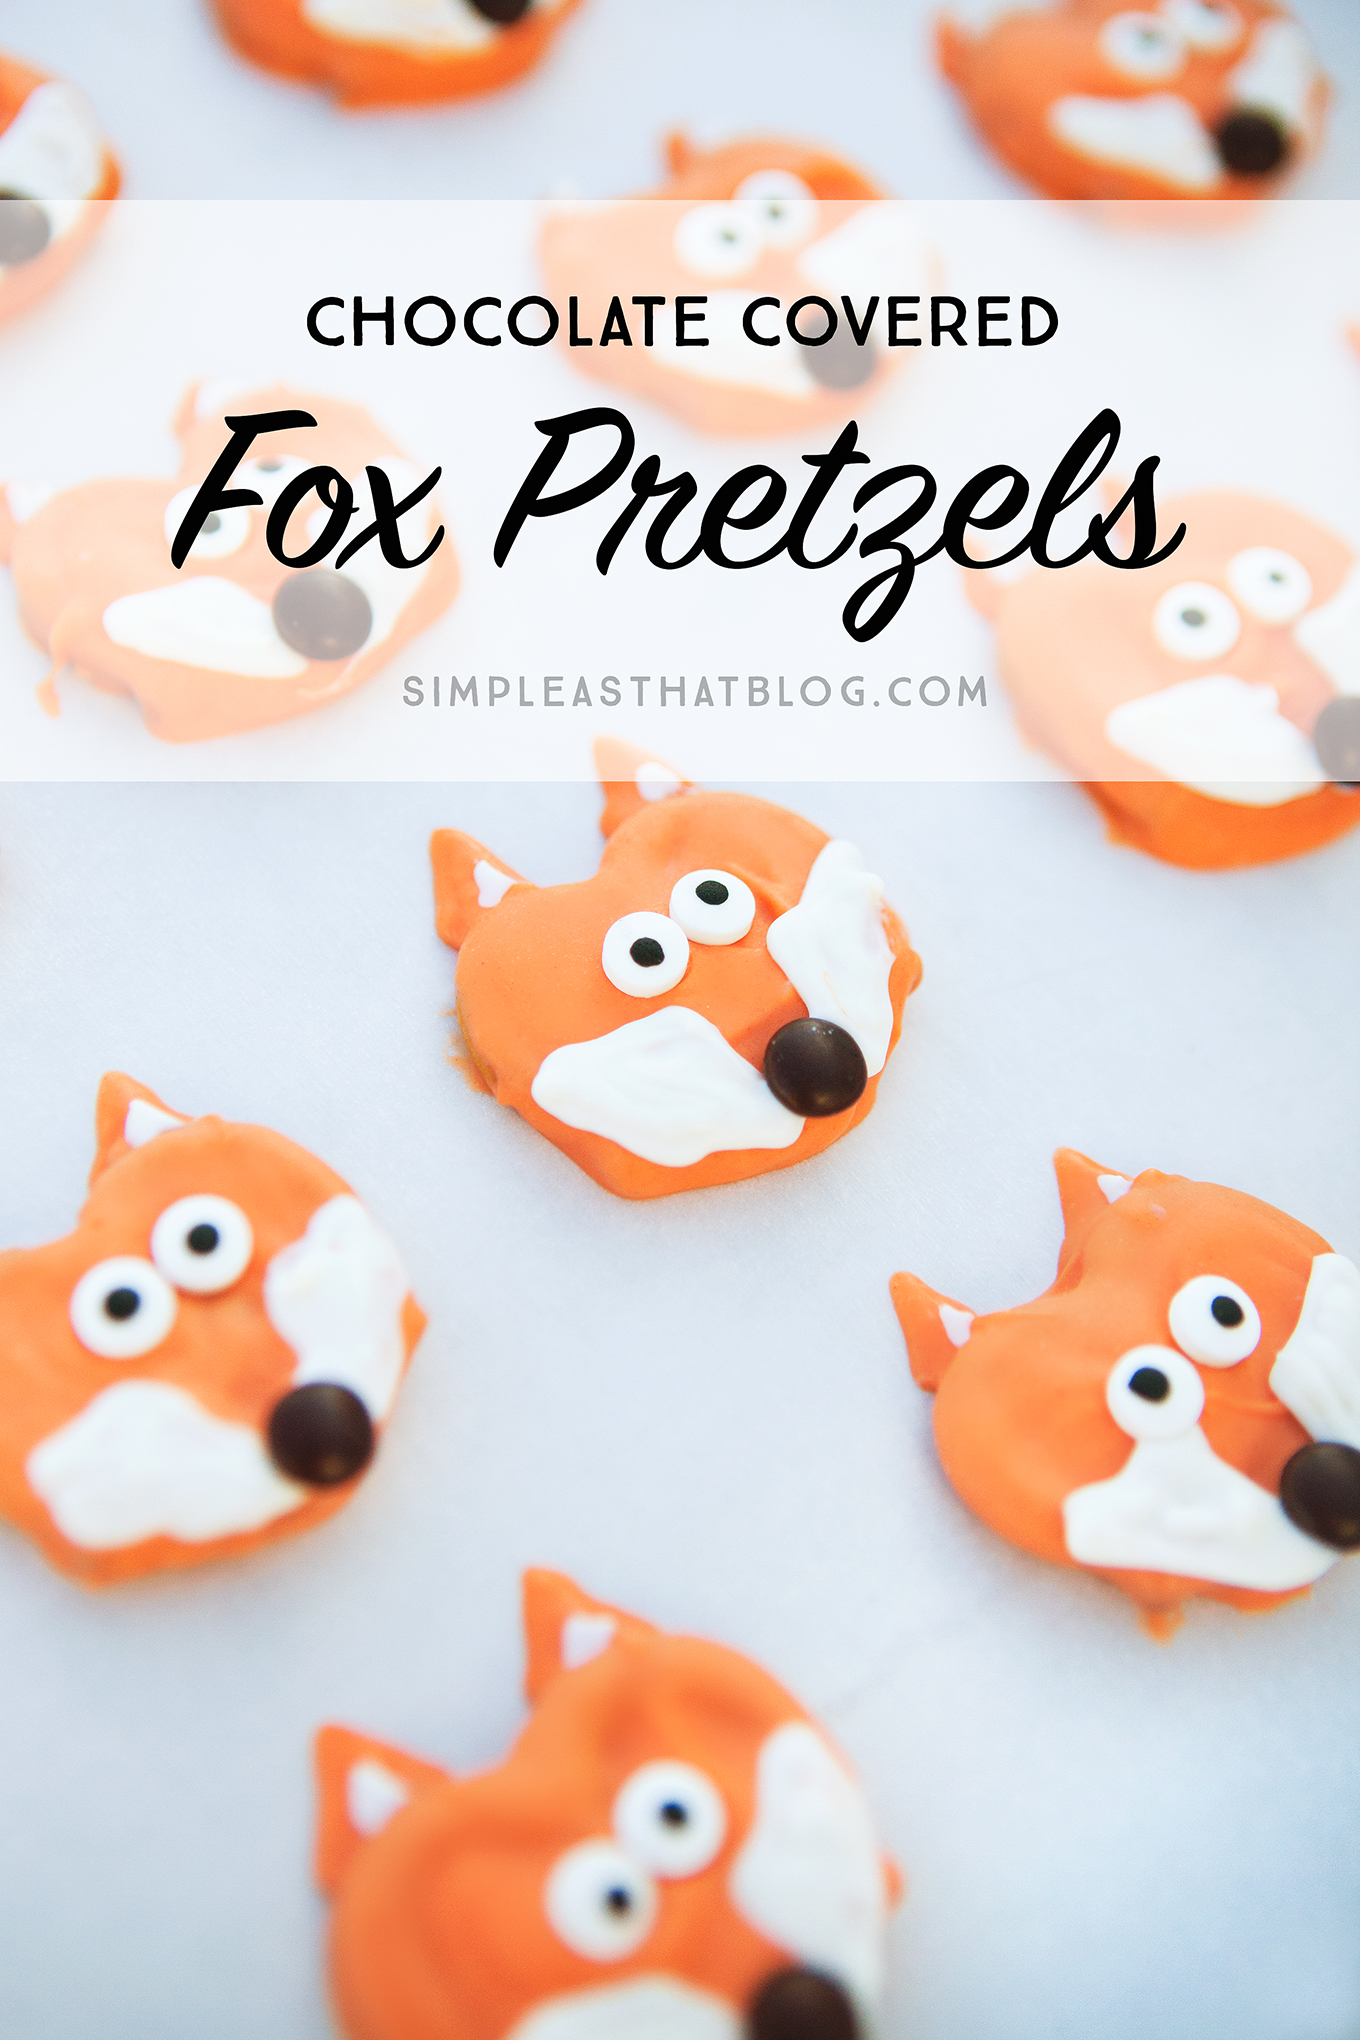 The cutest little chocolate covered fox pretzels. A delicious fall treat that can be made in just a few minutes!